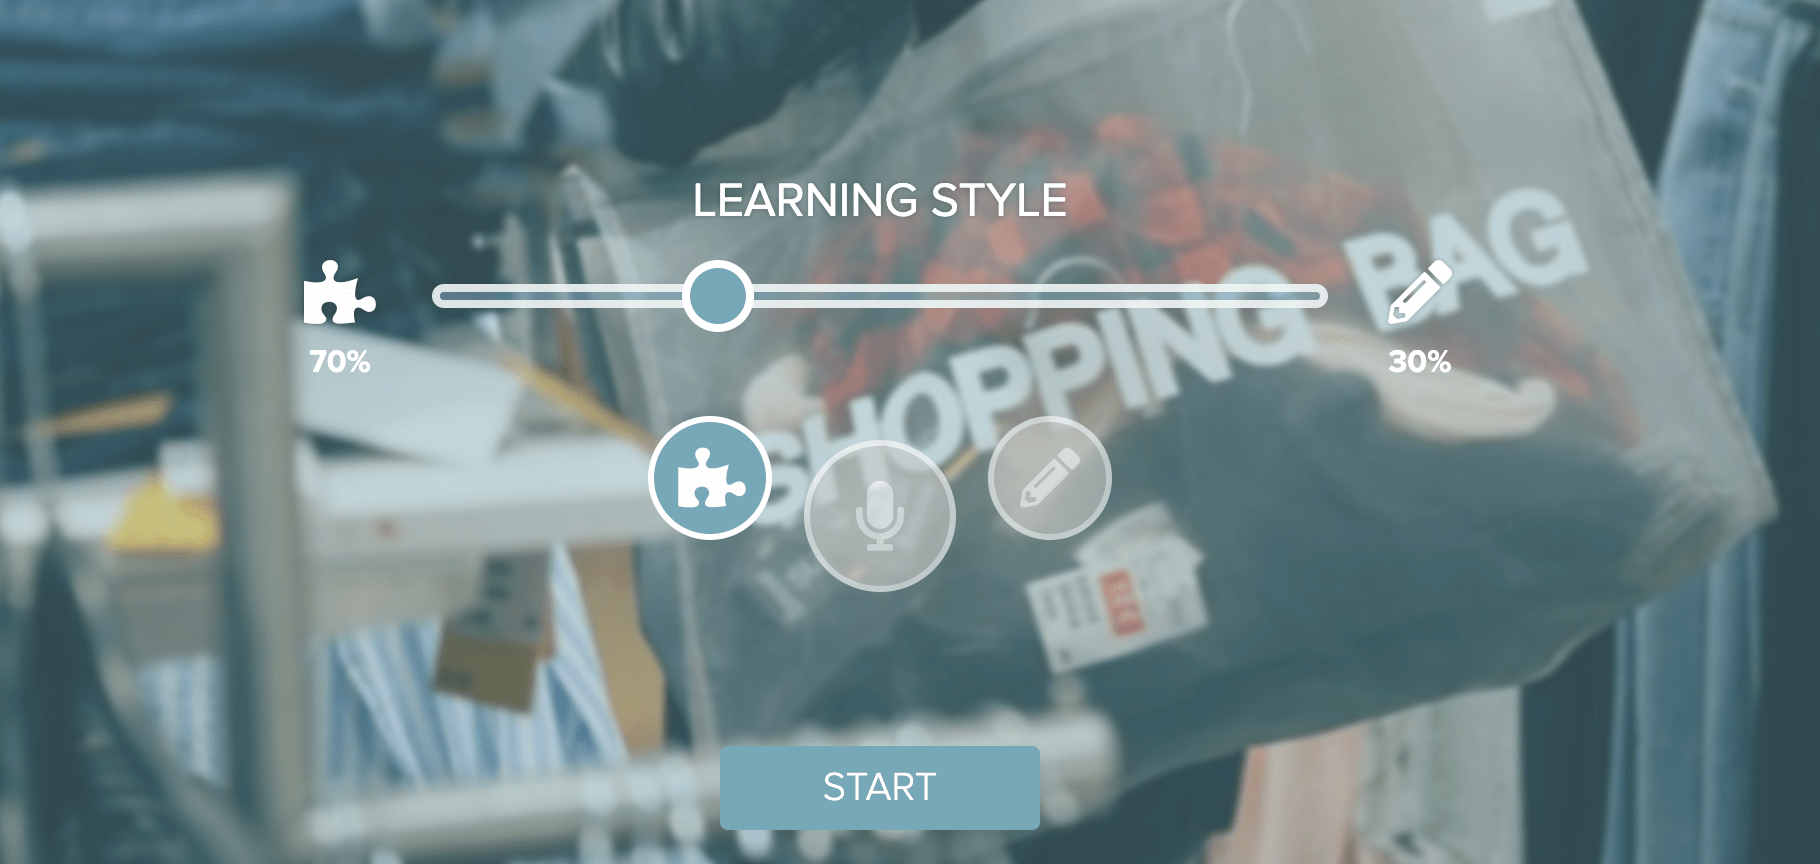 Reactored learning style slider suitable for learners of all levels